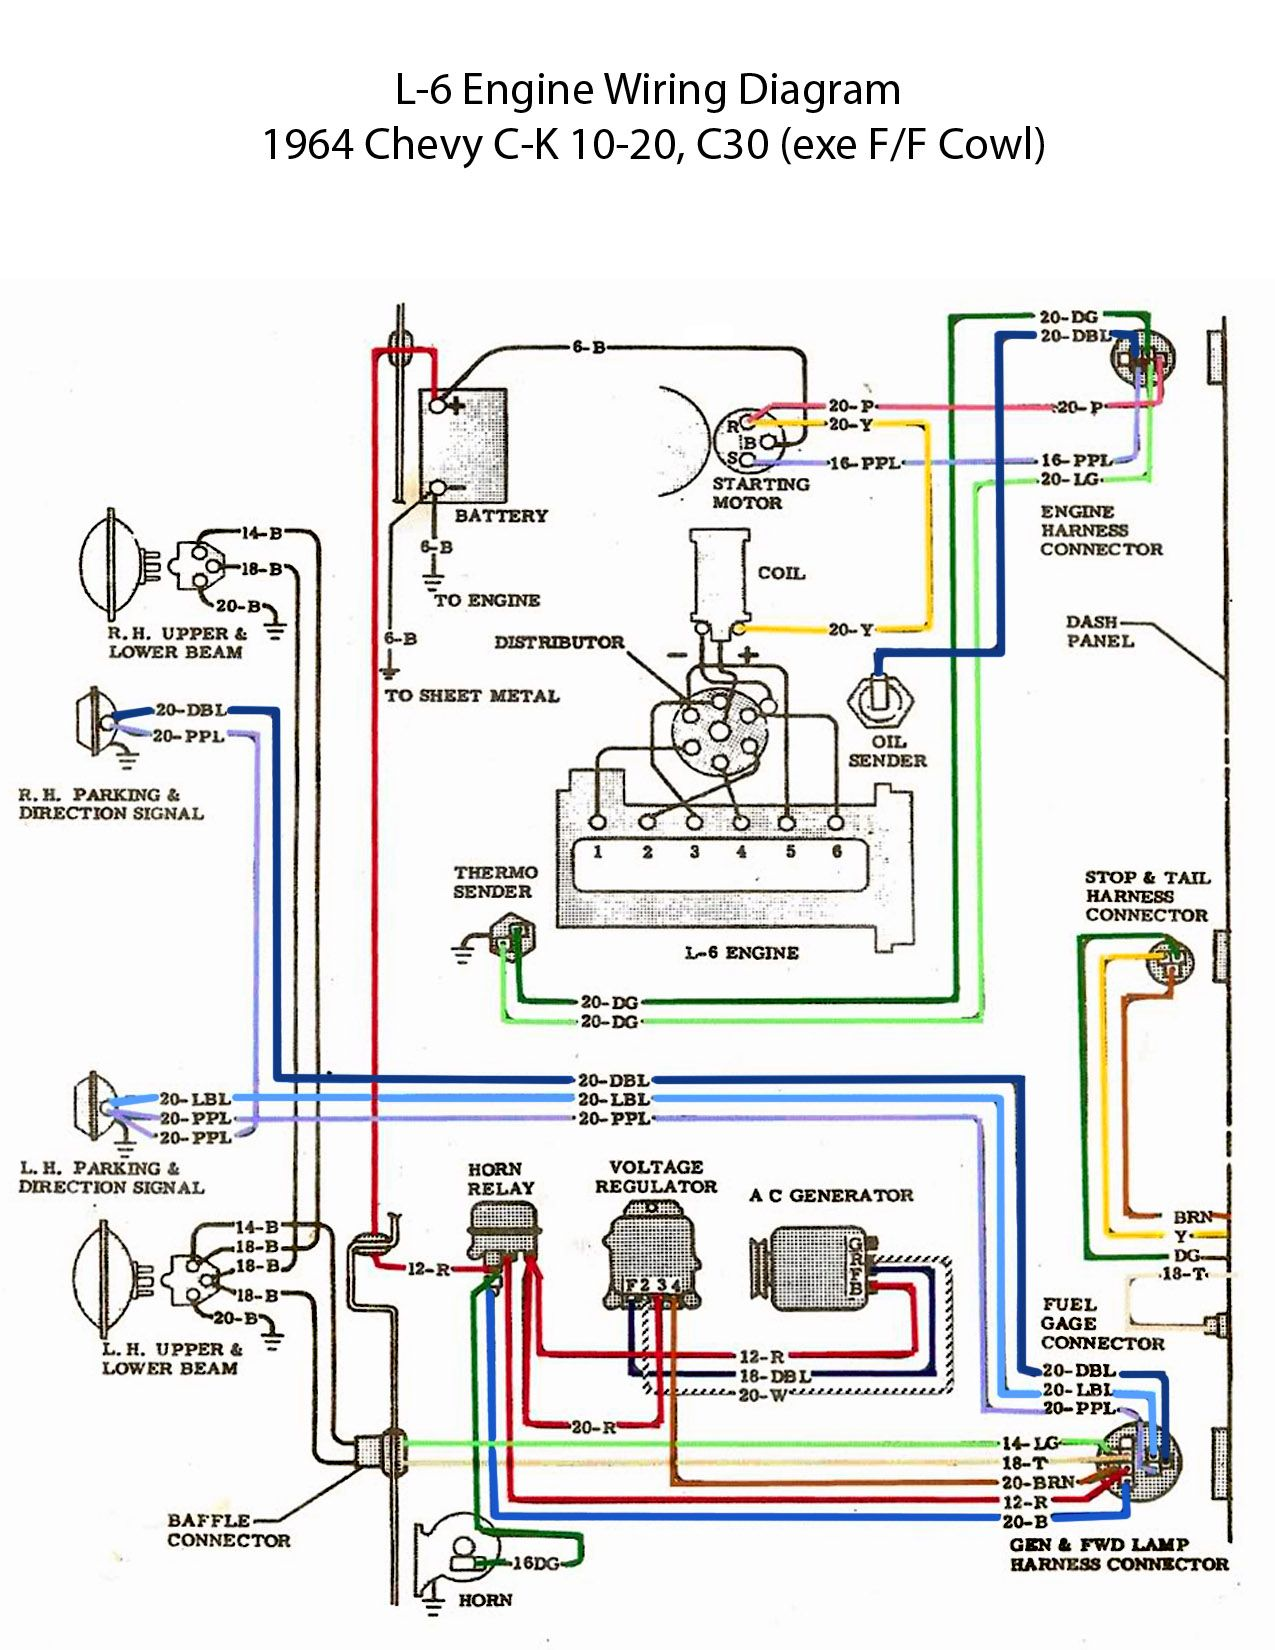 electric l 6 engine wiring diagram 60s chevy c10 wiring rh pinterest com chevy 454 engine wiring diagram chevy engine wiring diagram boat